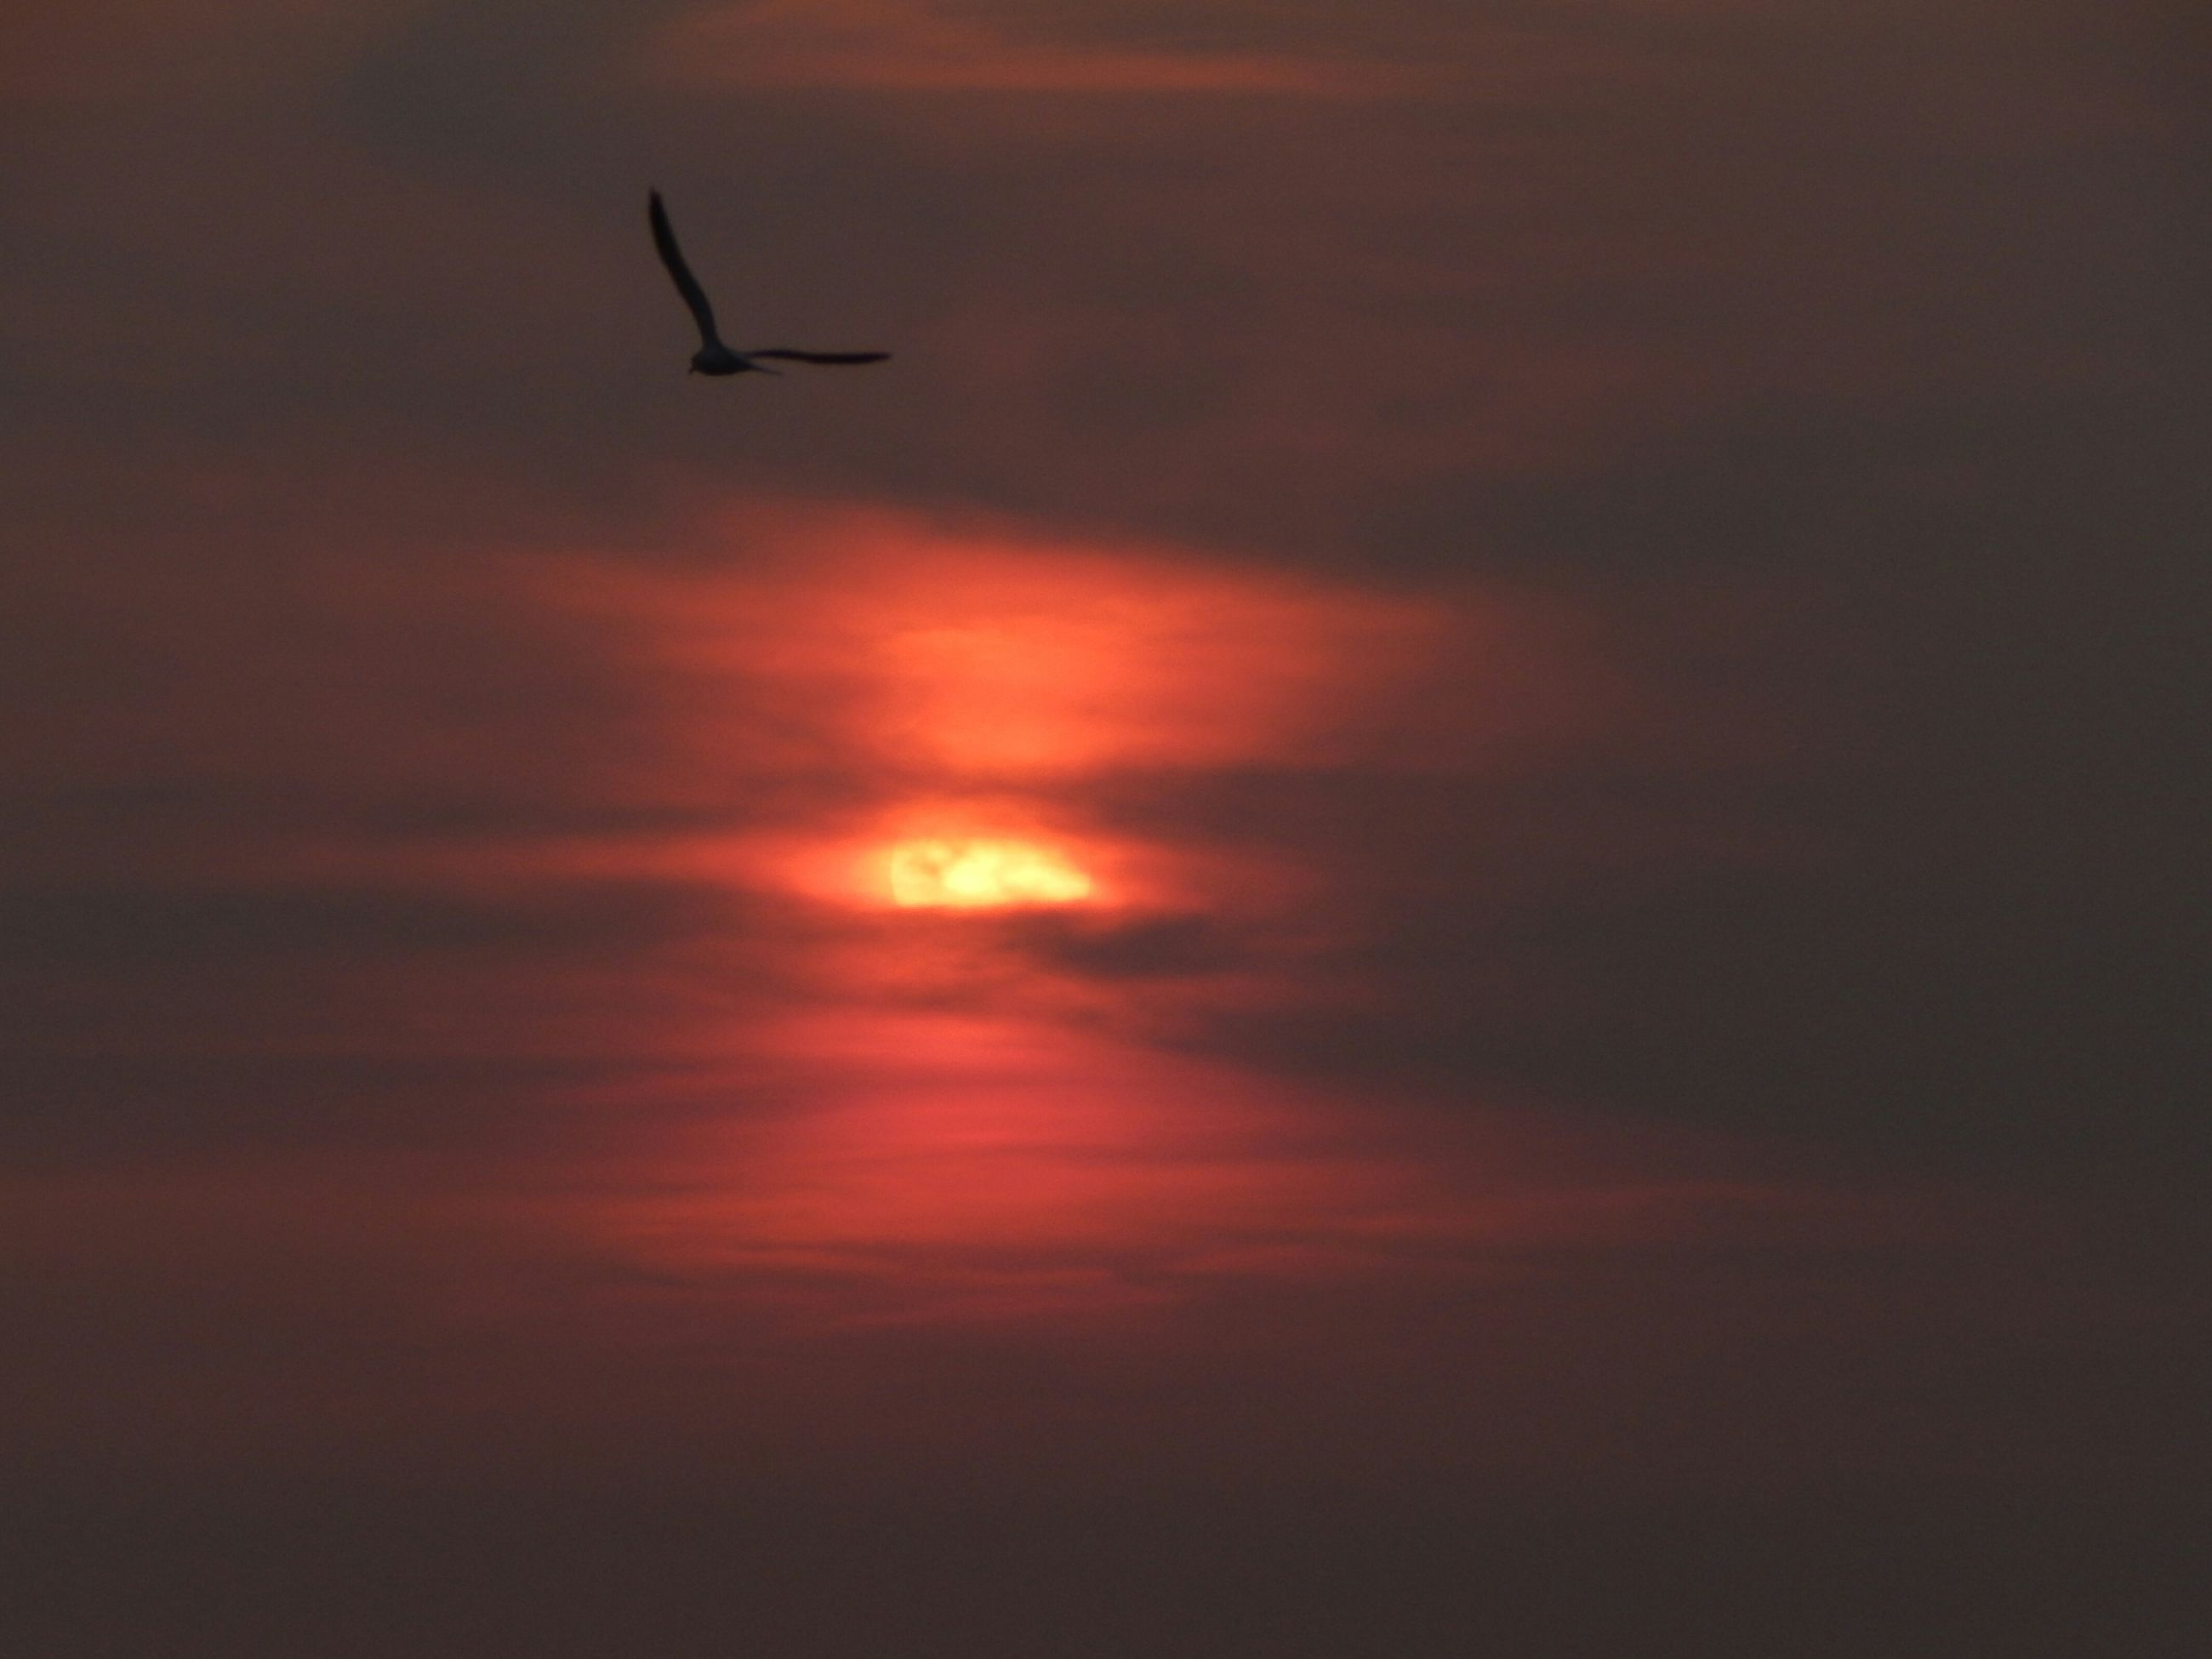 sunset, sky, flying, cloud - sky, orange color, scenics, beauty in nature, tranquility, nature, silhouette, low angle view, airplane, tranquil scene, dramatic sky, cloudy, idyllic, dusk, weather, cloud, outdoors